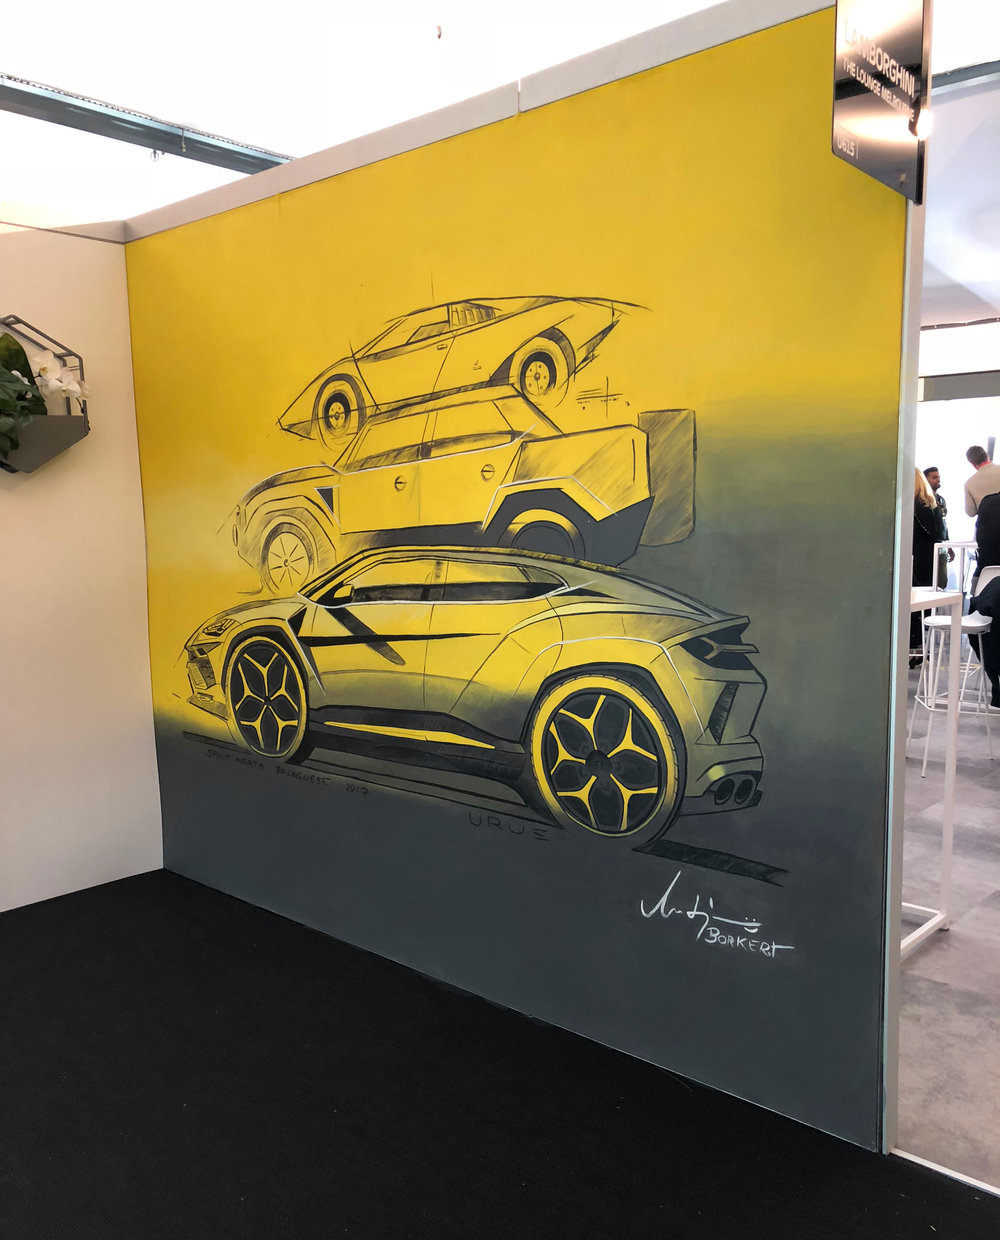 Lamborghini Genealogy,  2018, acrylic on fabric panel, 3x3m, Lamborghini Lounge, Australian Grand Prix.